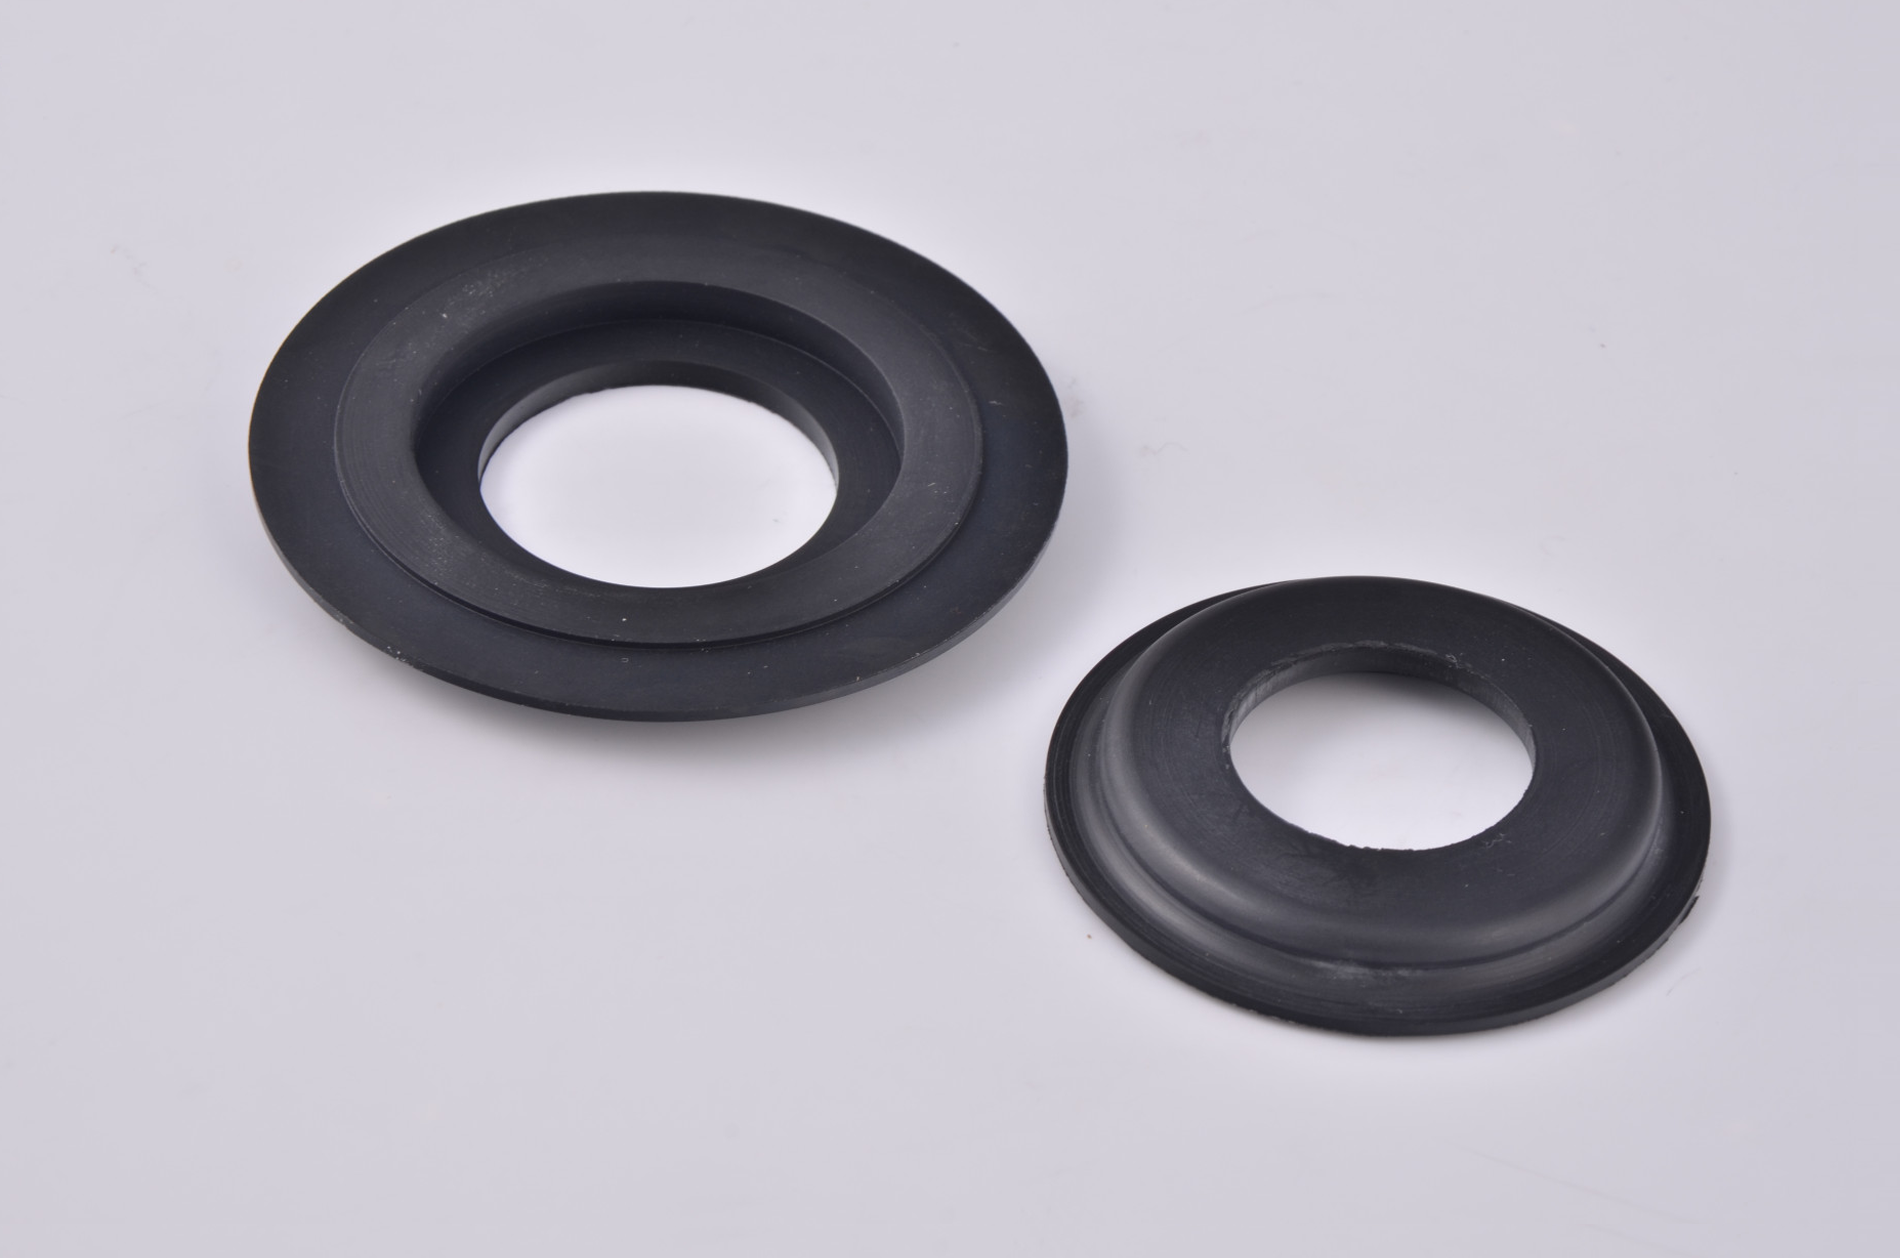 Rubber gasket Manufacturers, Rubber gasket Factory, Rubber gasket